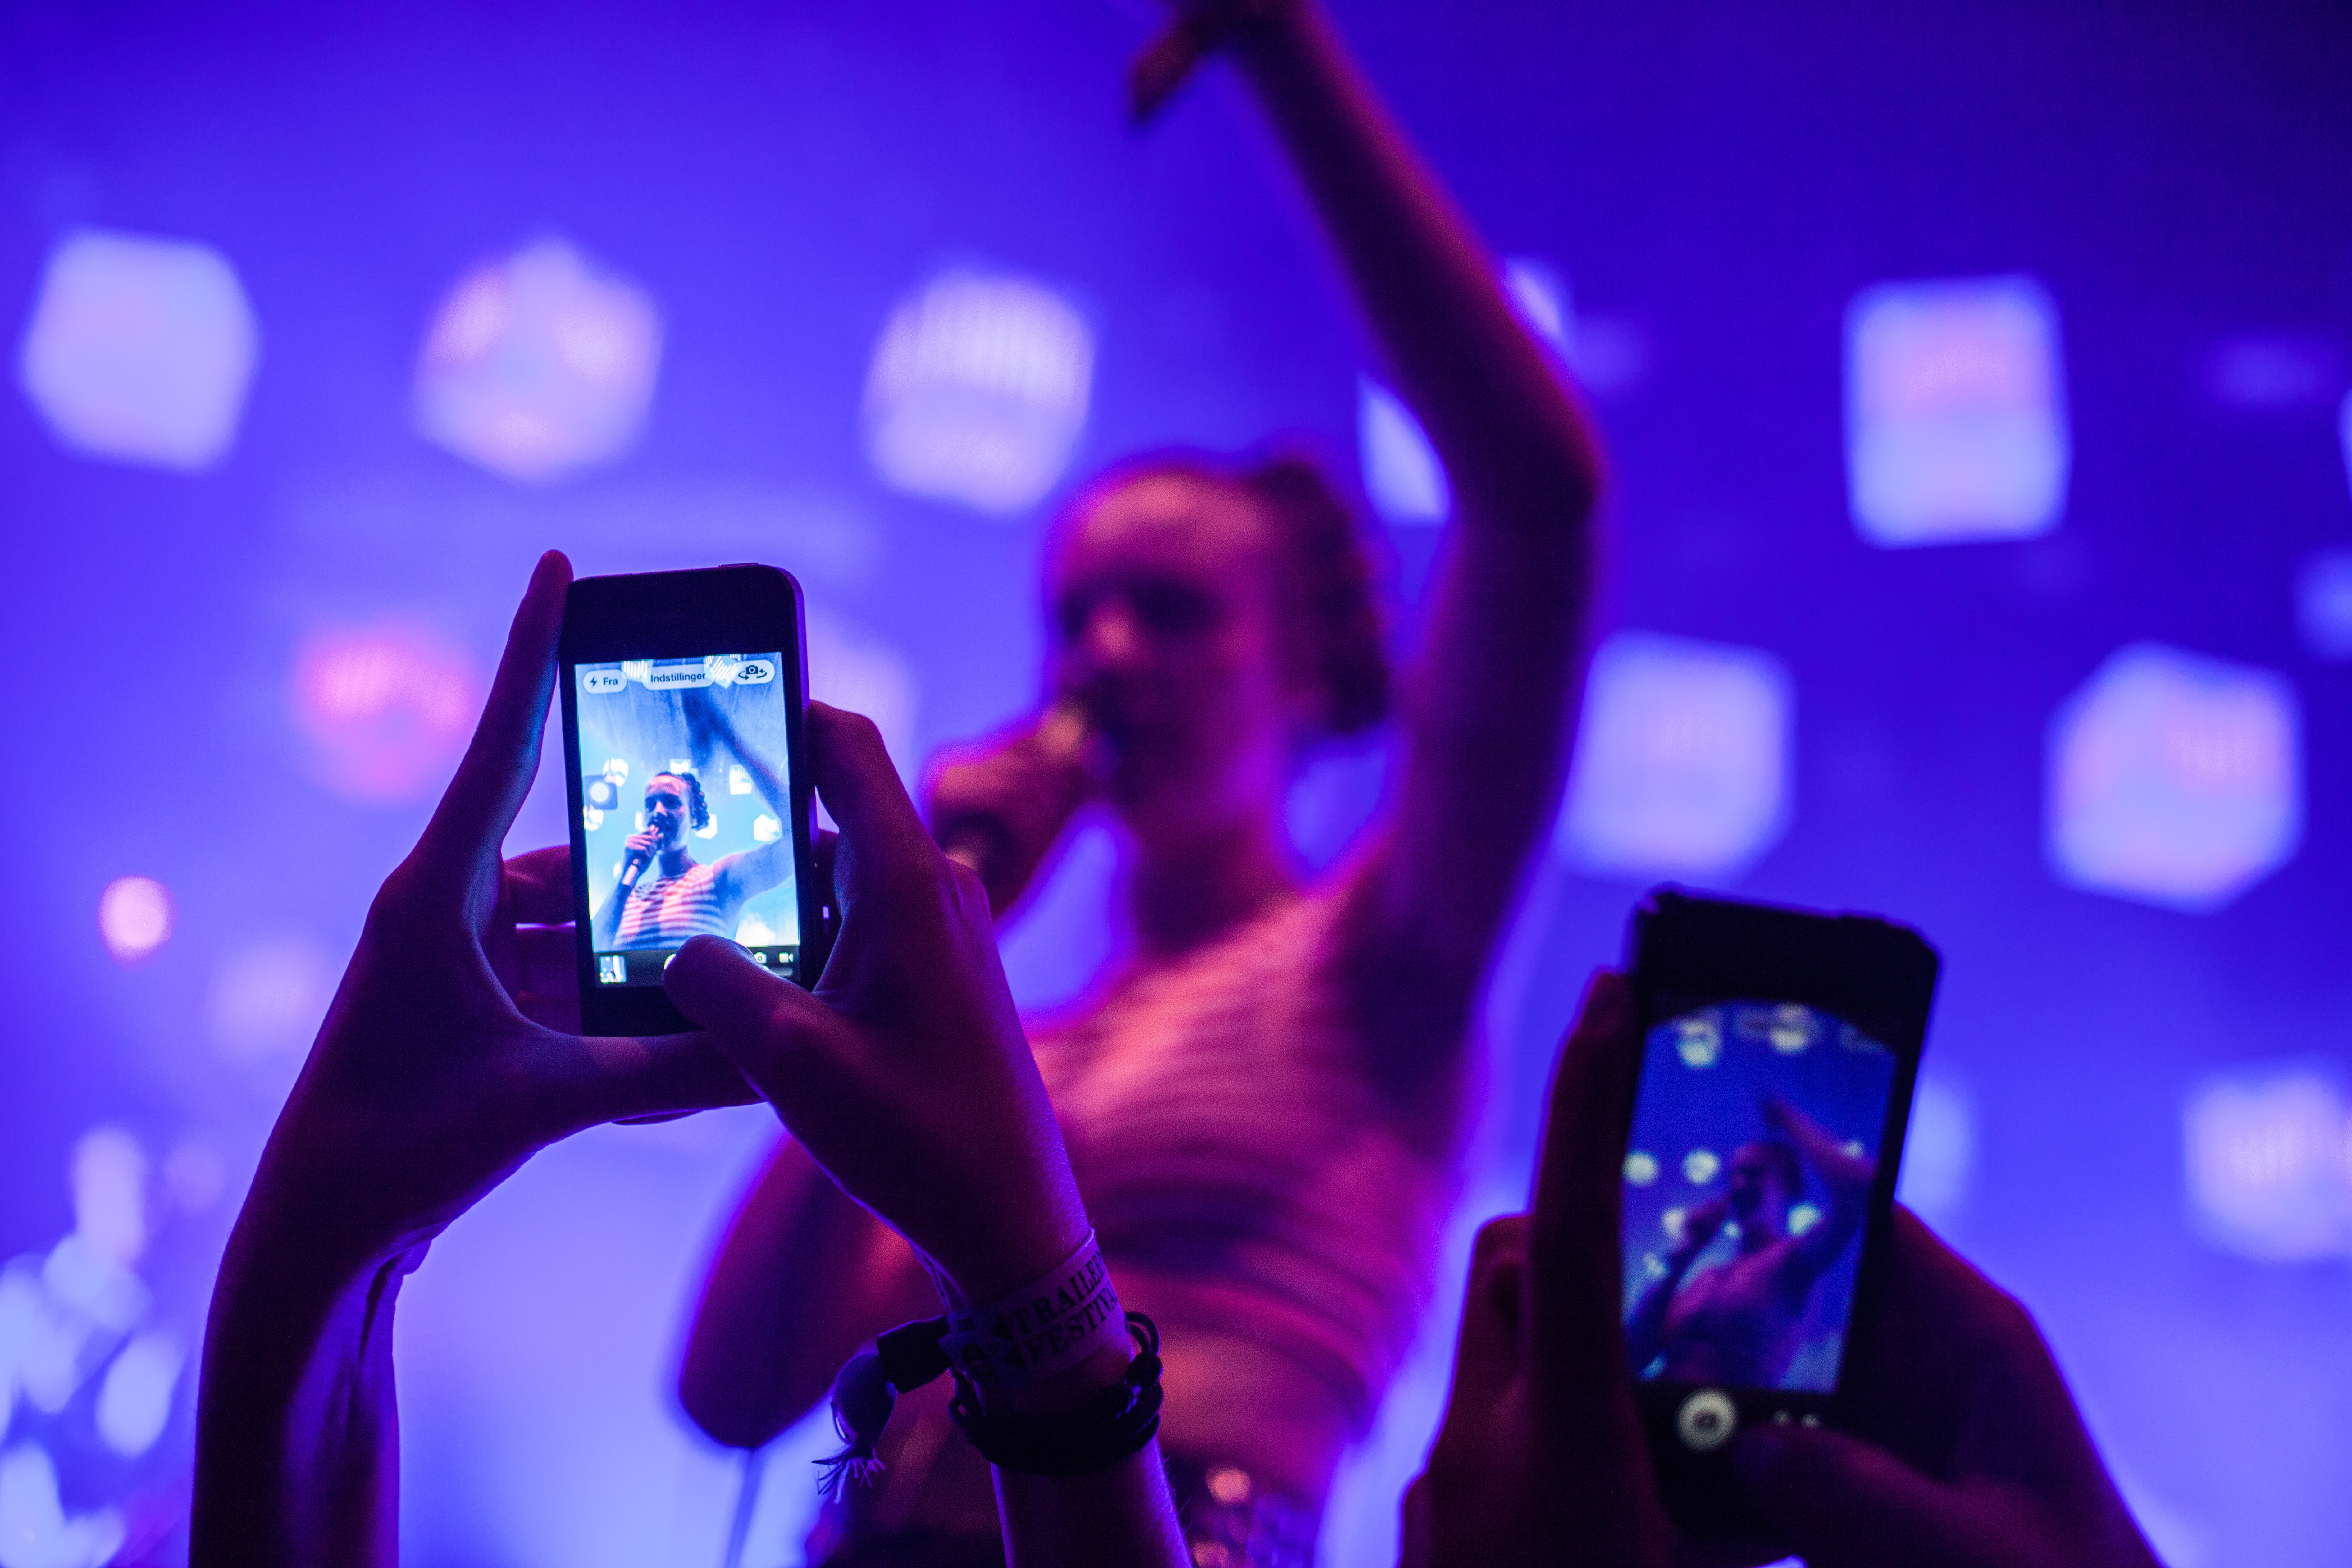 Concert guests take photos with their smart phones at a live concert. Denmark 2013.